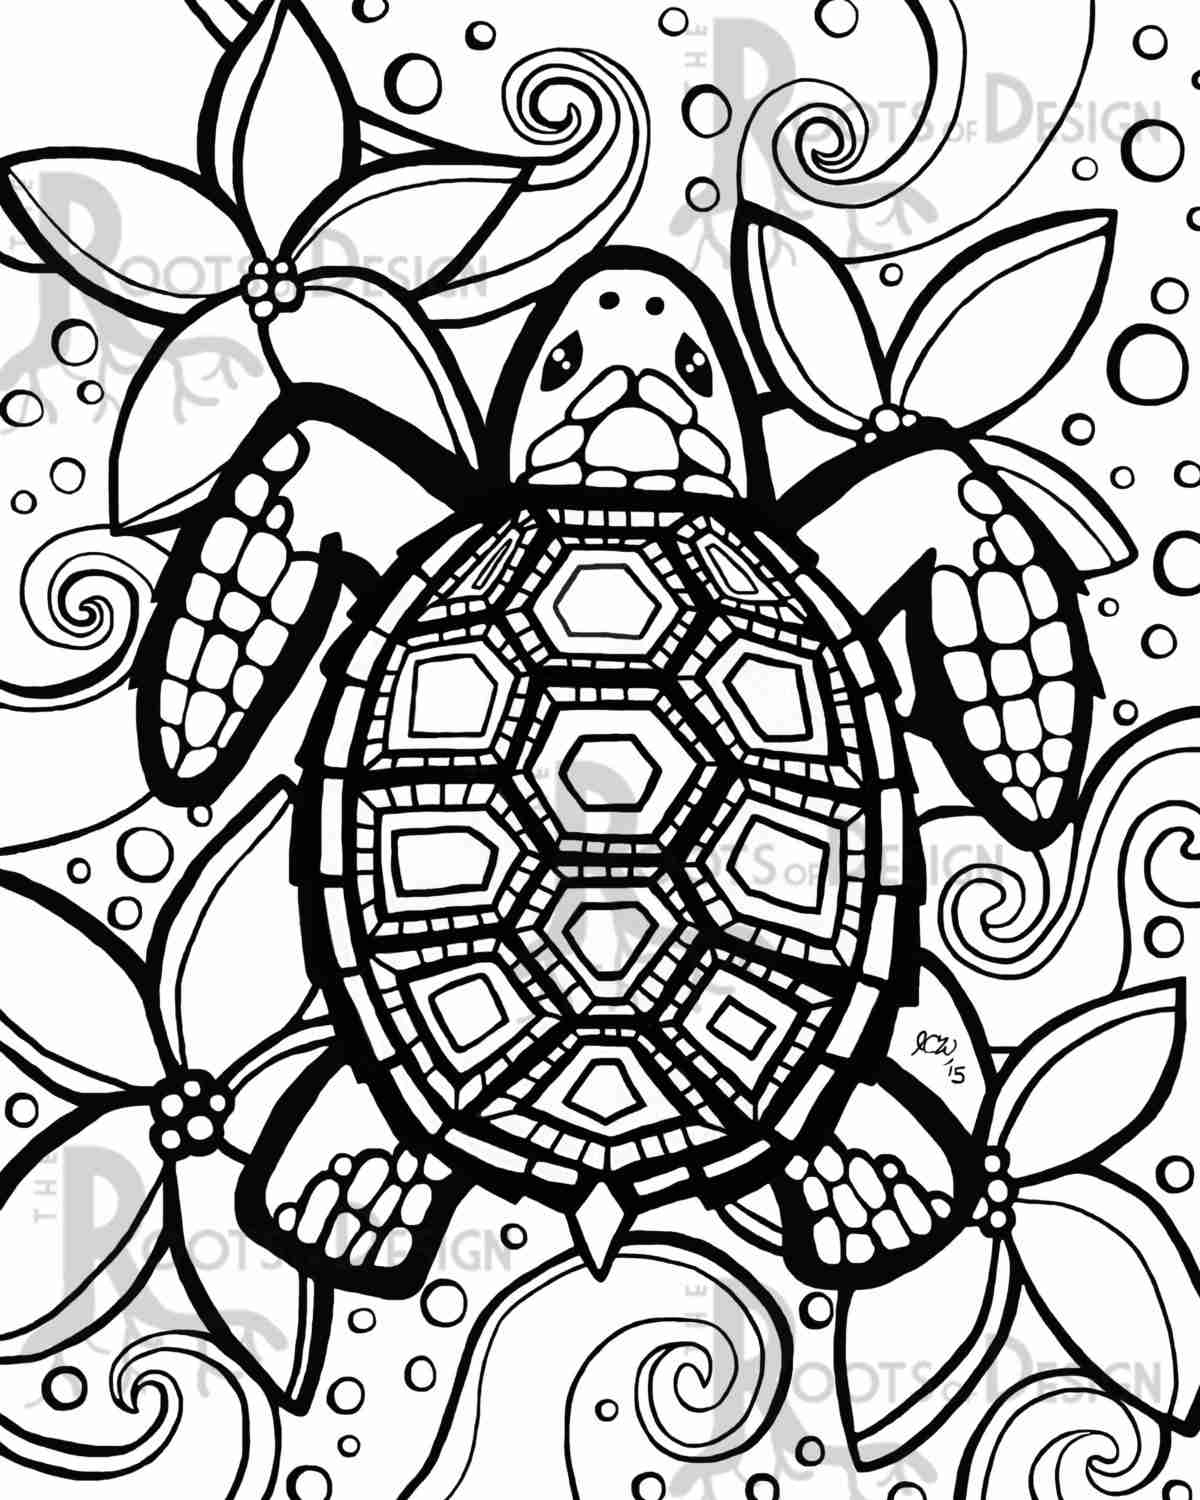 Sea Coloring Pages For Adults at GetDrawings.com   Free for ...